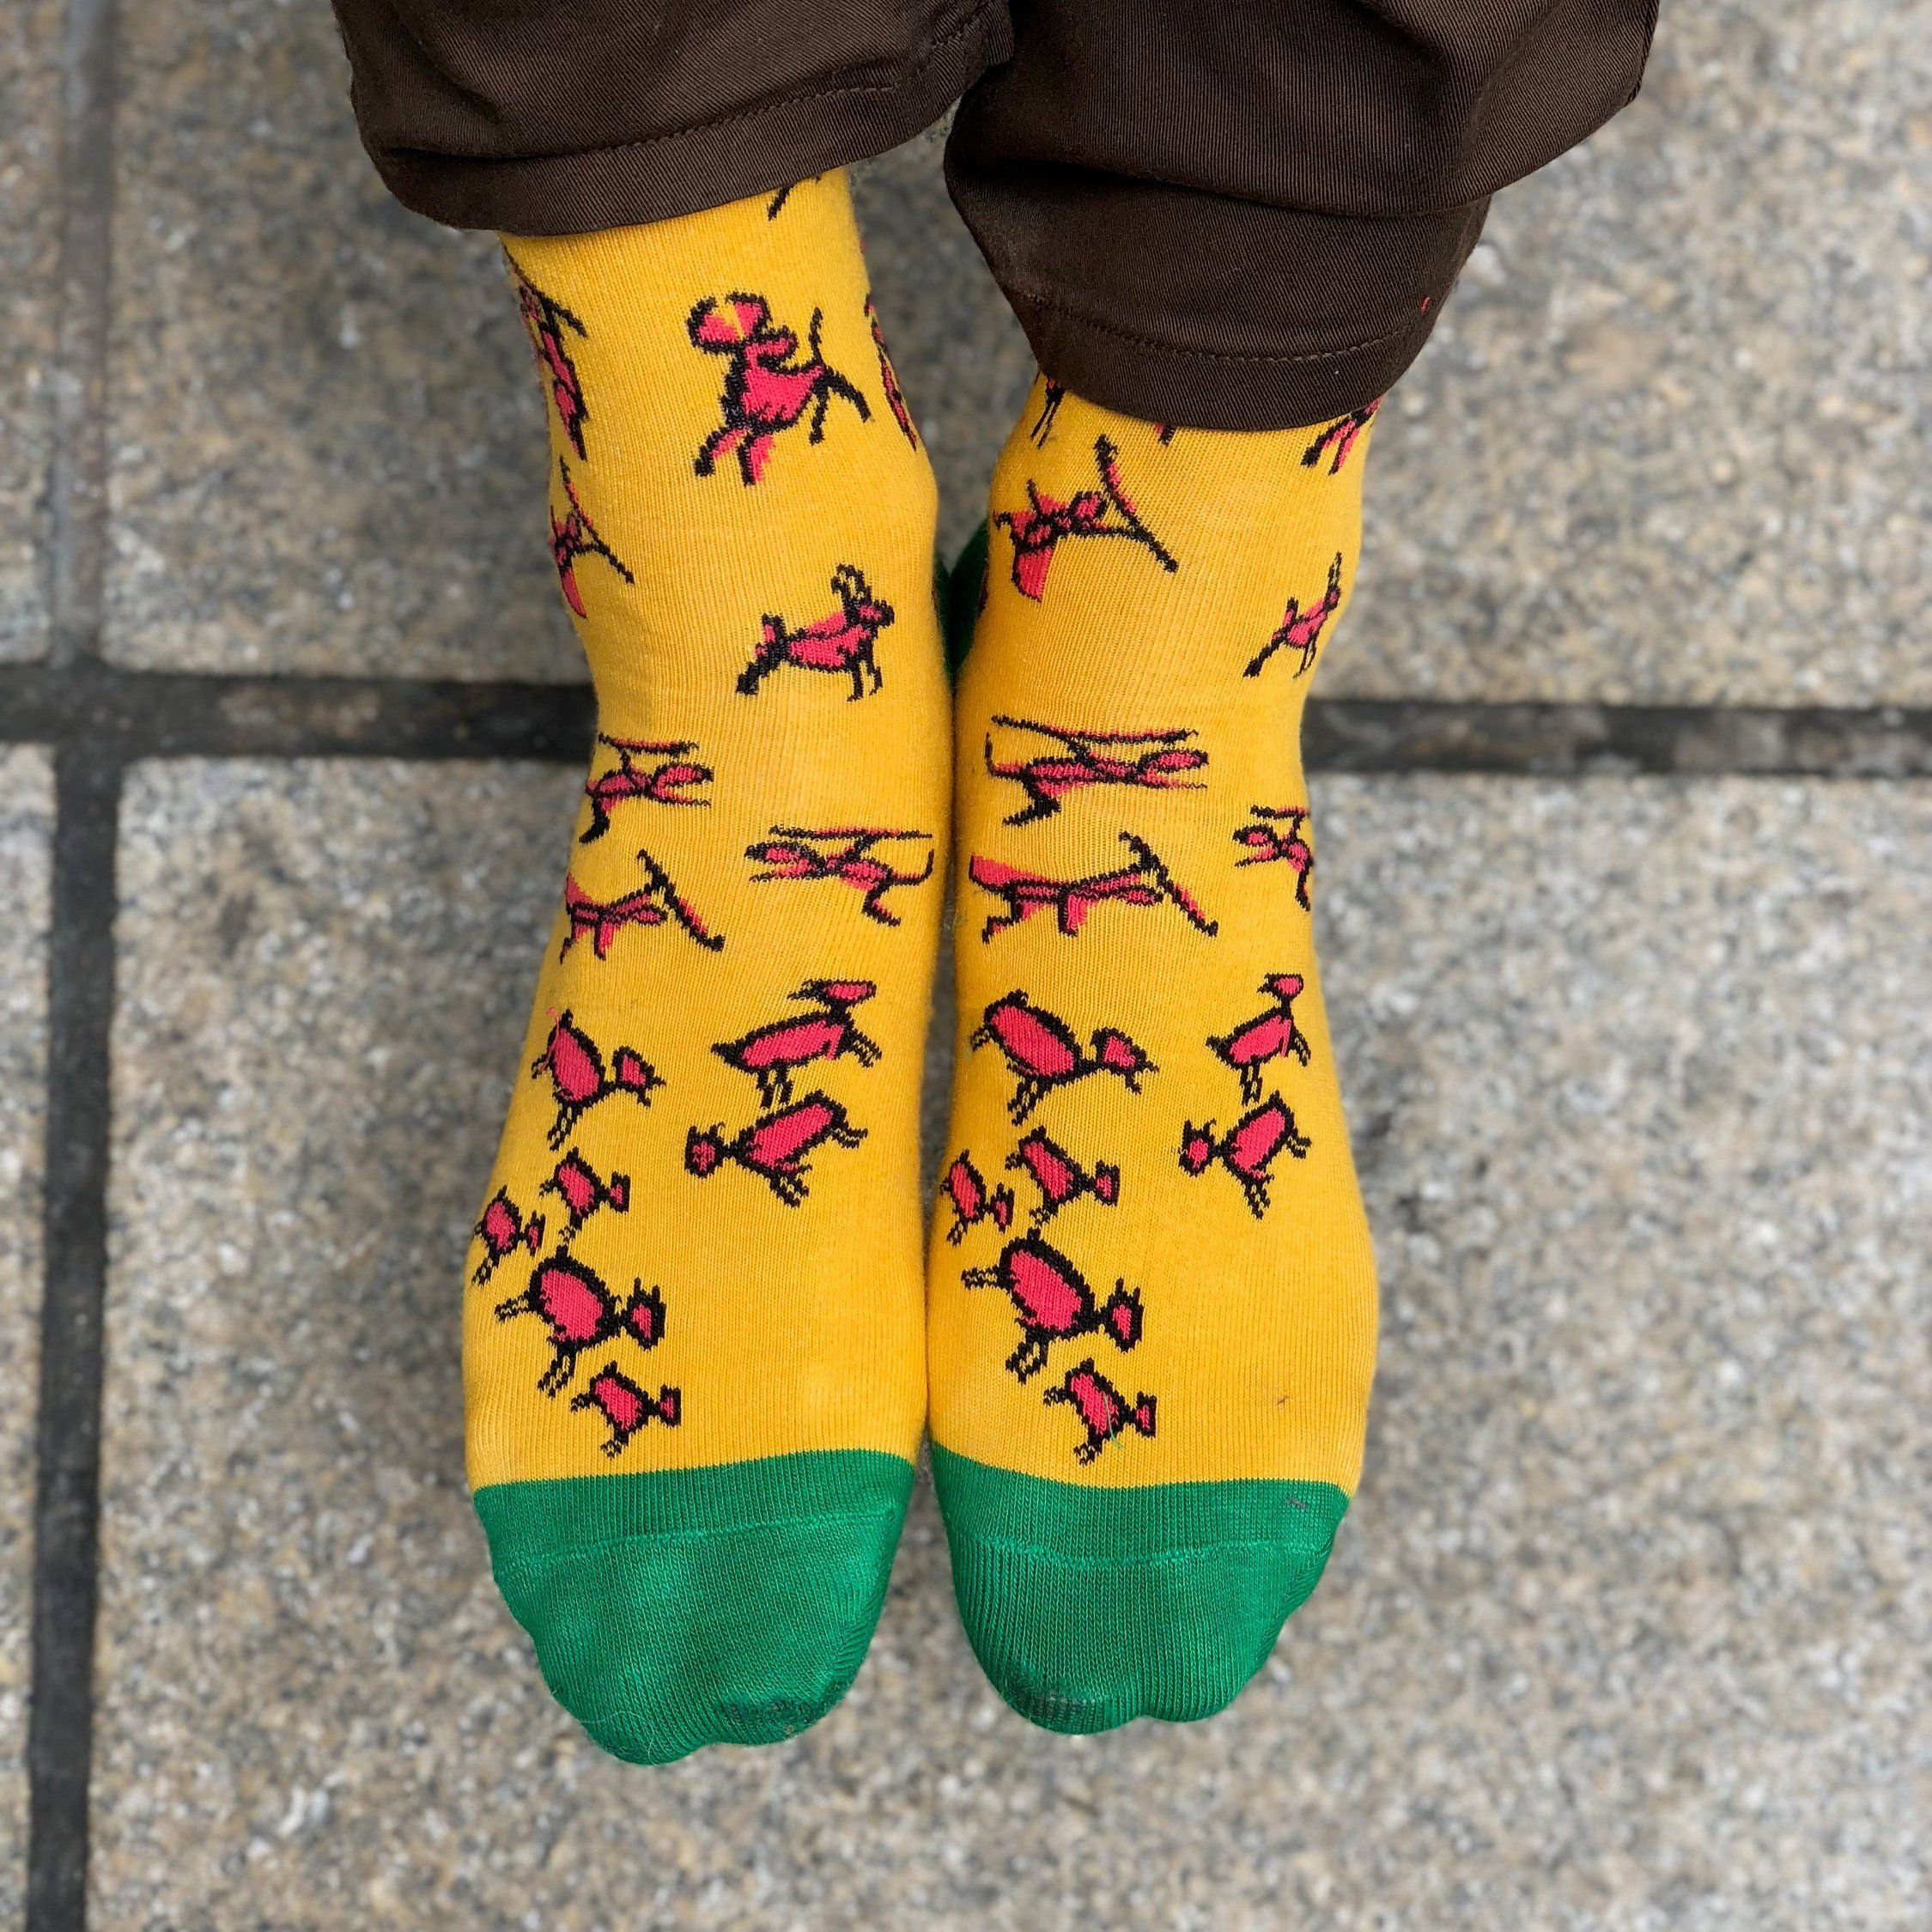 e6b88255b5af Supper funny stone age art!. Yellow colorful socks with cave men drawings  on it. Super fun gift for men for any kind occasion.